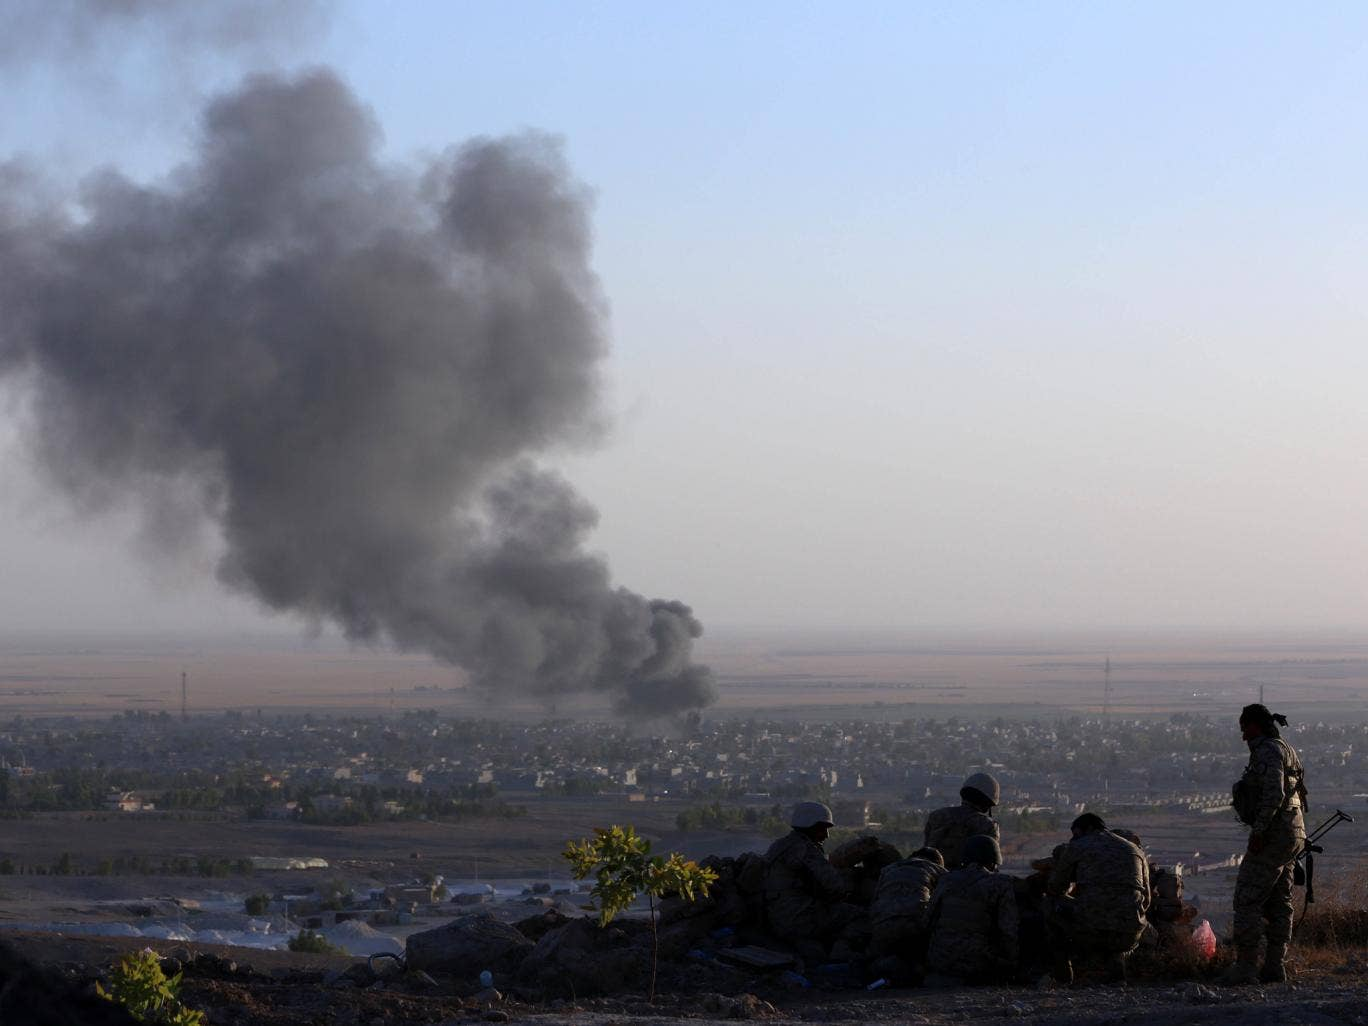 Iraqi Kurdish Peshmerga fighters look on as smoke billows from the town Makhmur, about 175 miles north of the capital Baghdad, during clashes with Isis militants